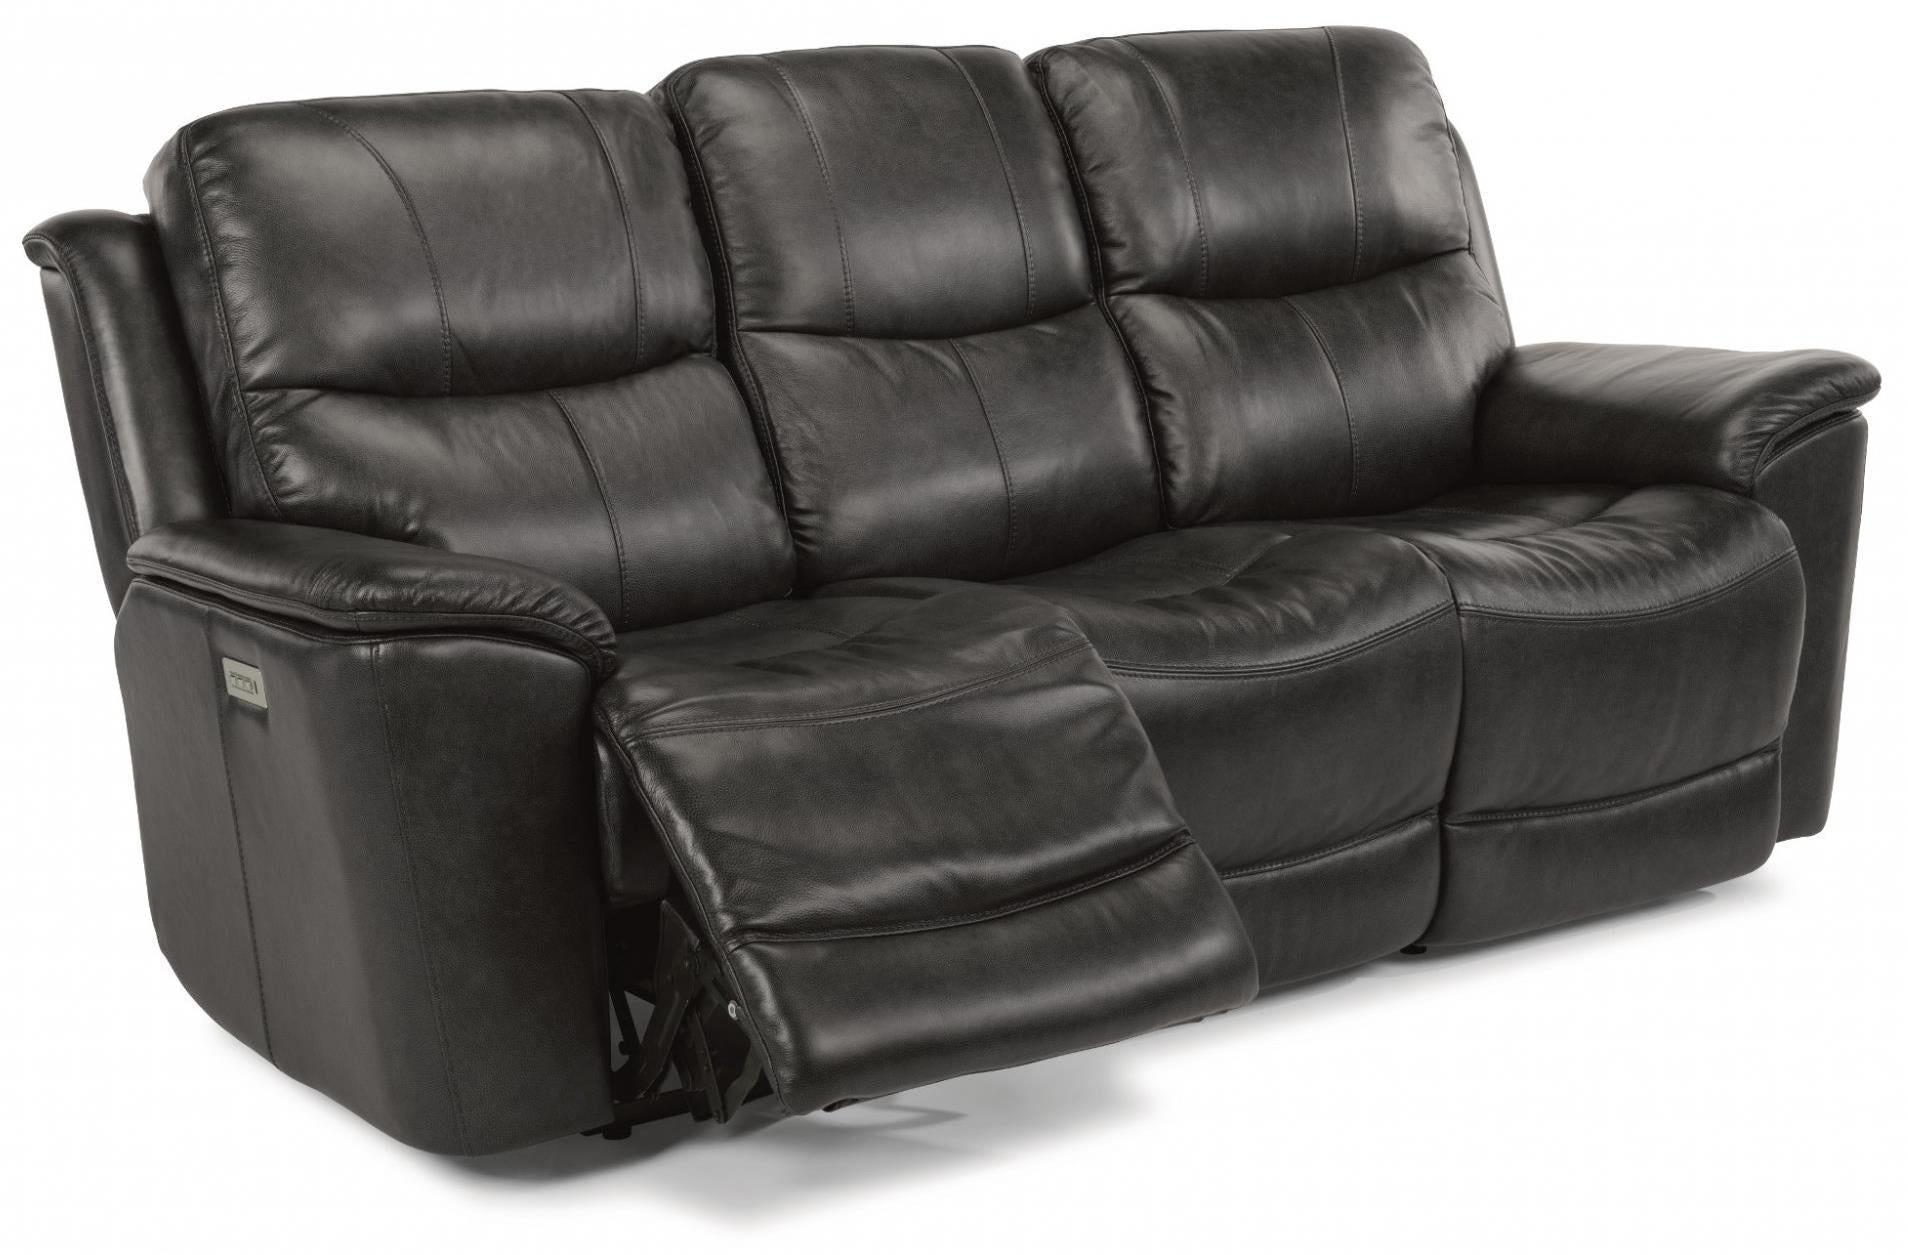 Cade Power Reclining Sofa With Power Headrests Power Lumbar And Lay Flat  Mechanism With Extended Footrest